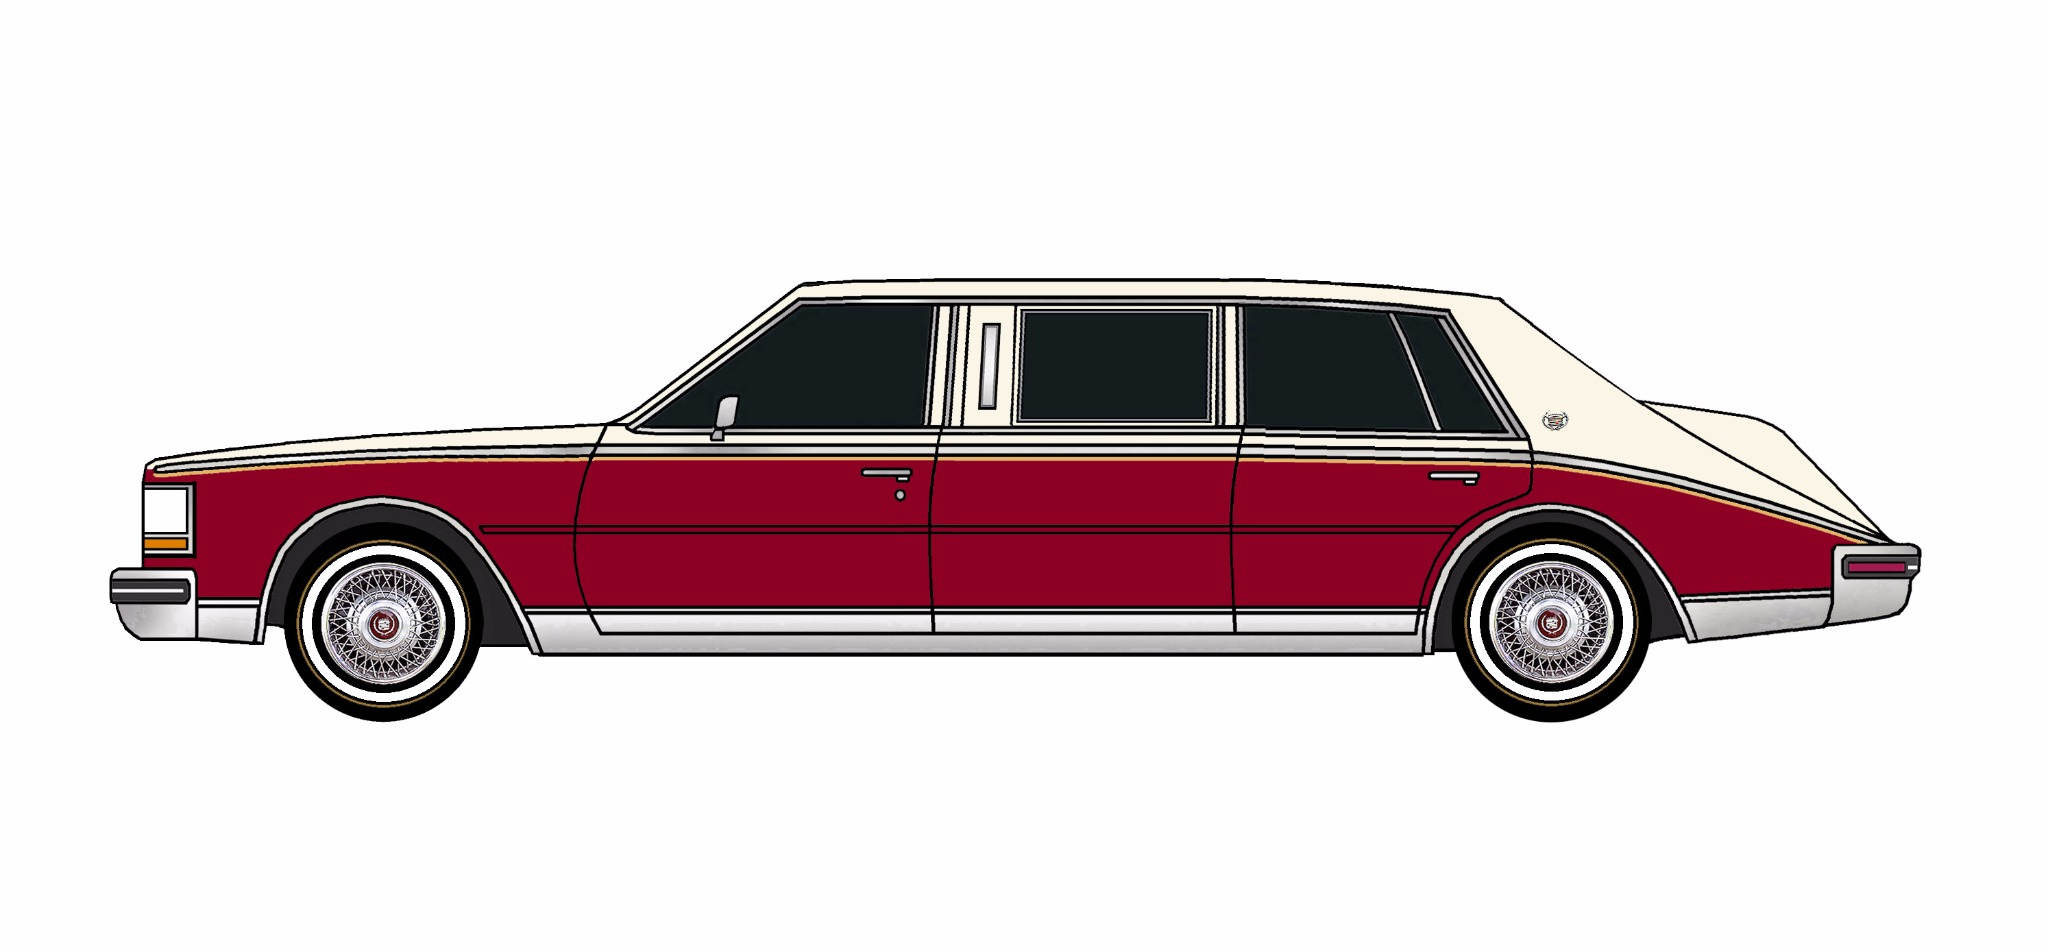 1980 Cadillac Seville Limo SANDY WHITE & DEEP BURGUNDY